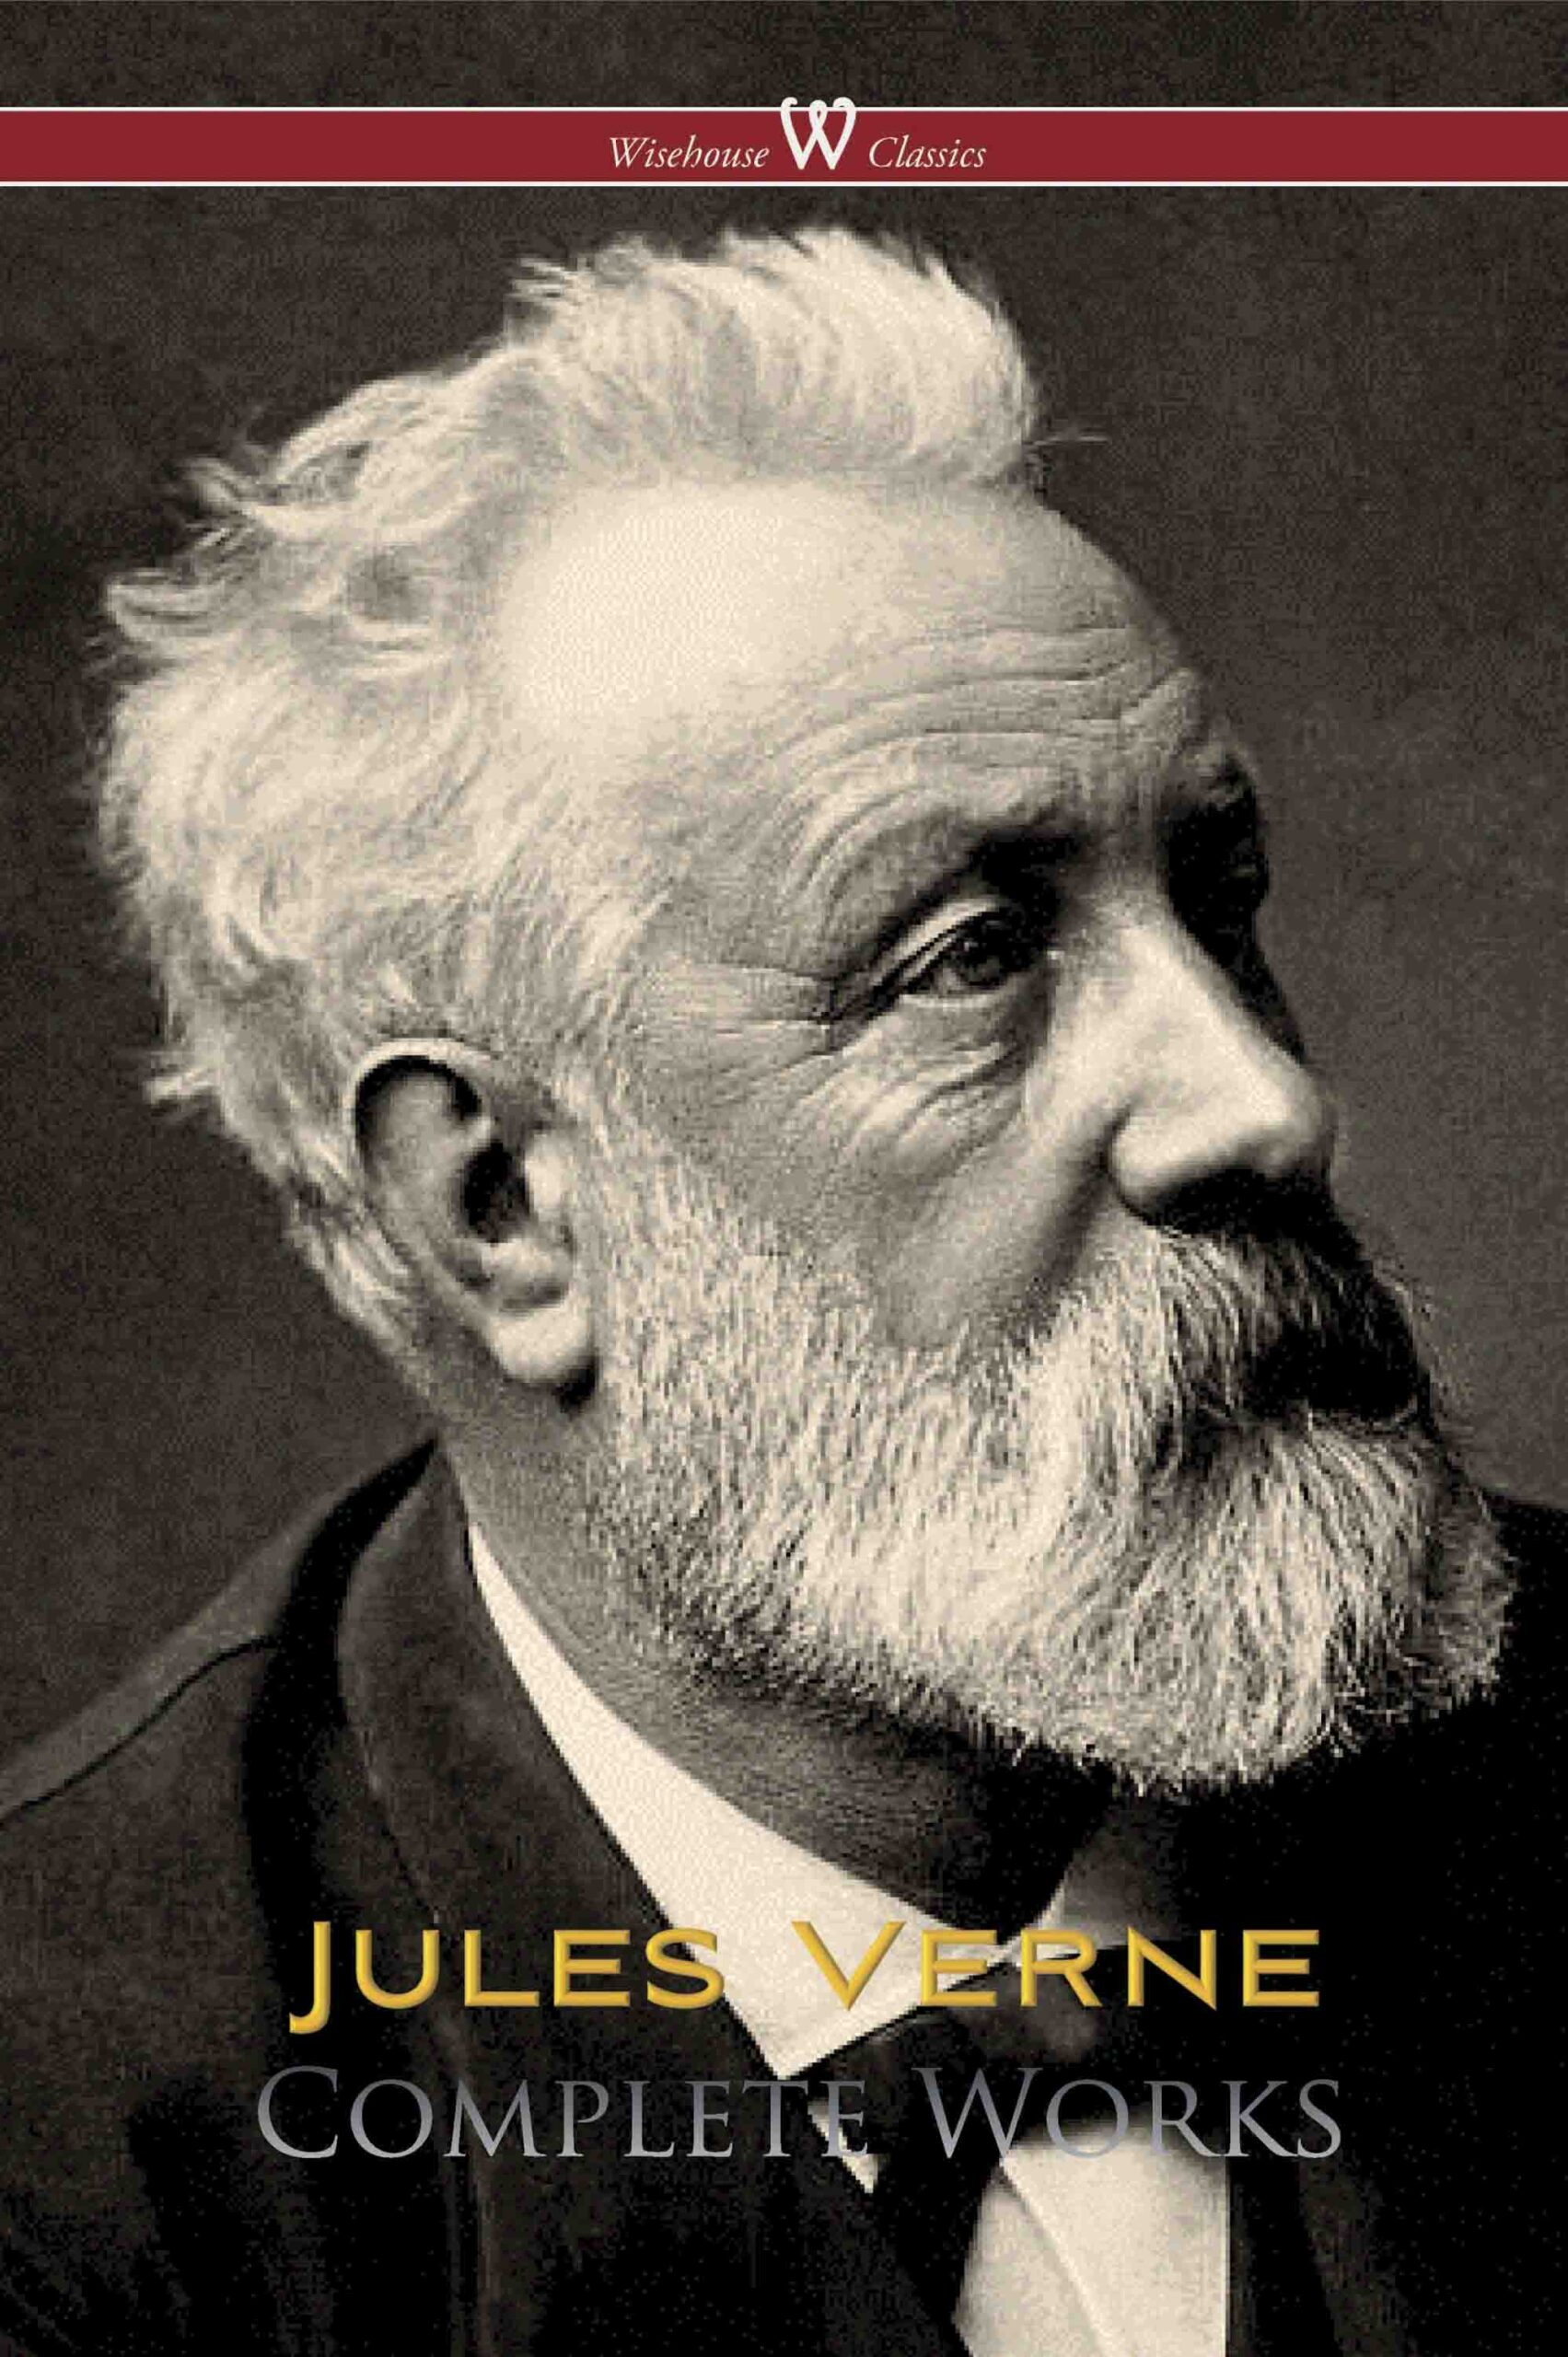 Jules Verne: Complete Works (Wisehouse Classics Edition)